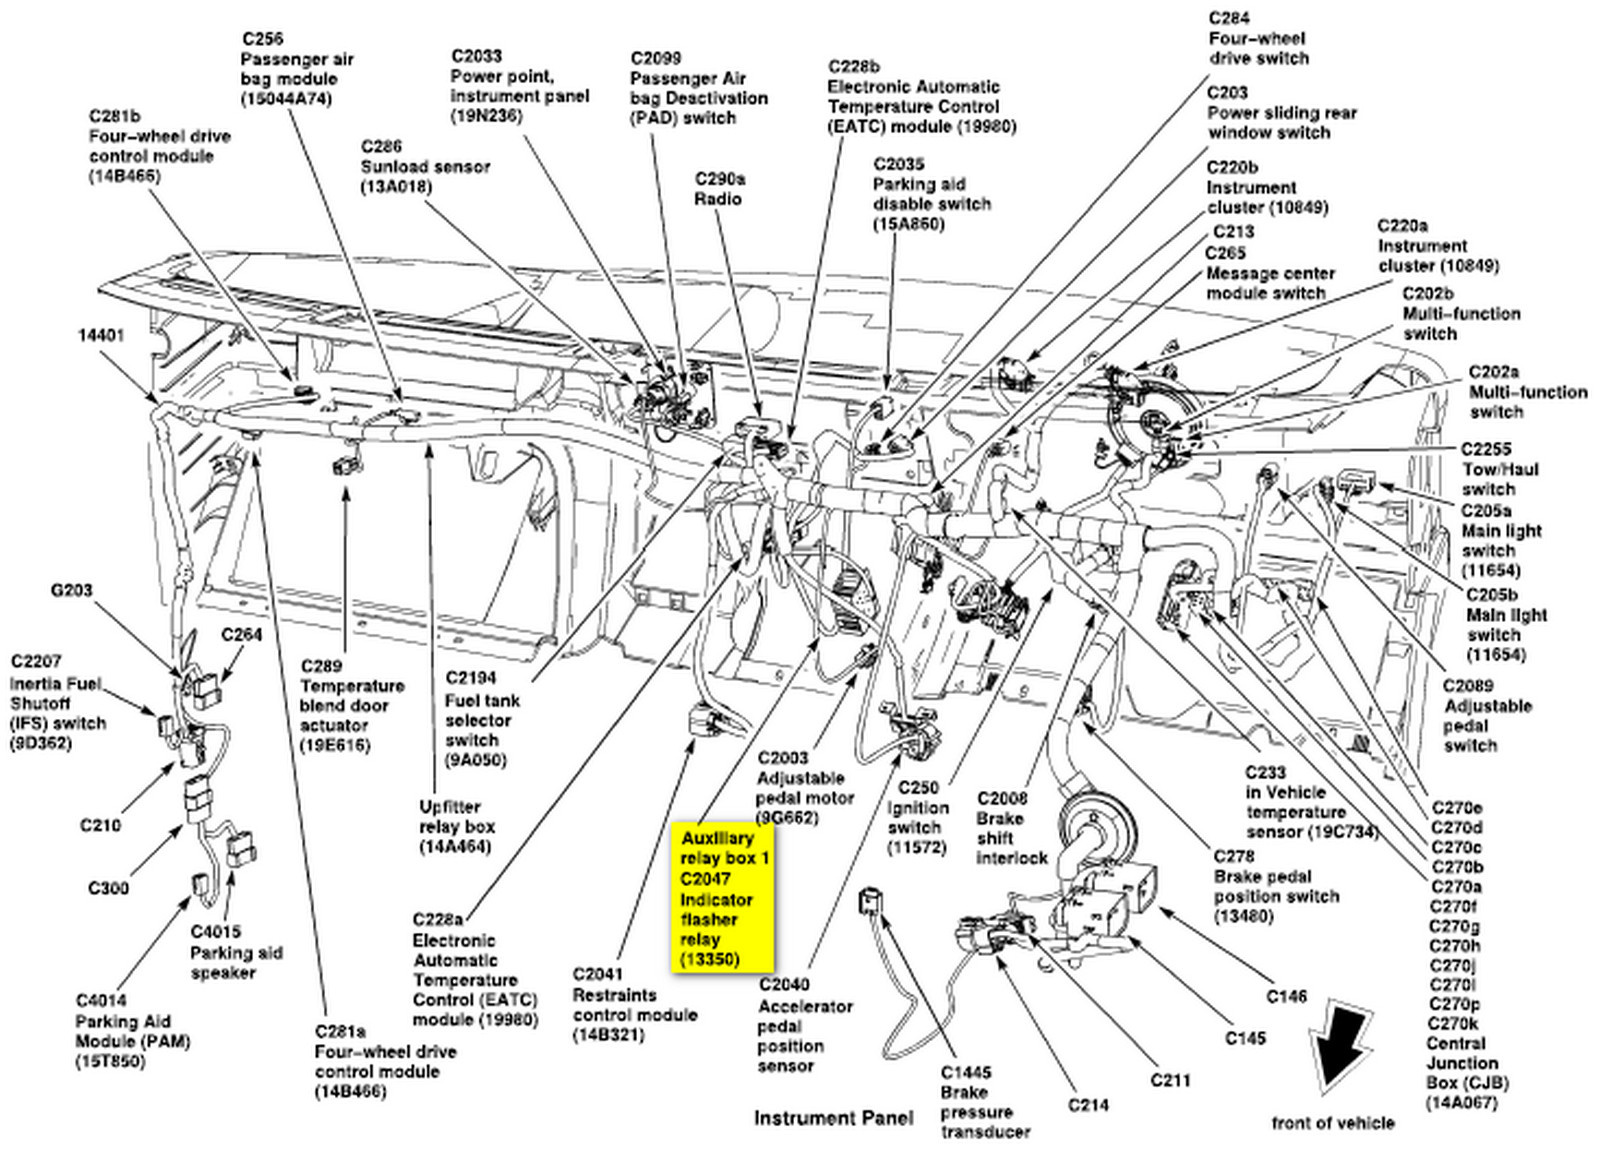 hight resolution of 06 f250 fuse diagram for diesel images gallery